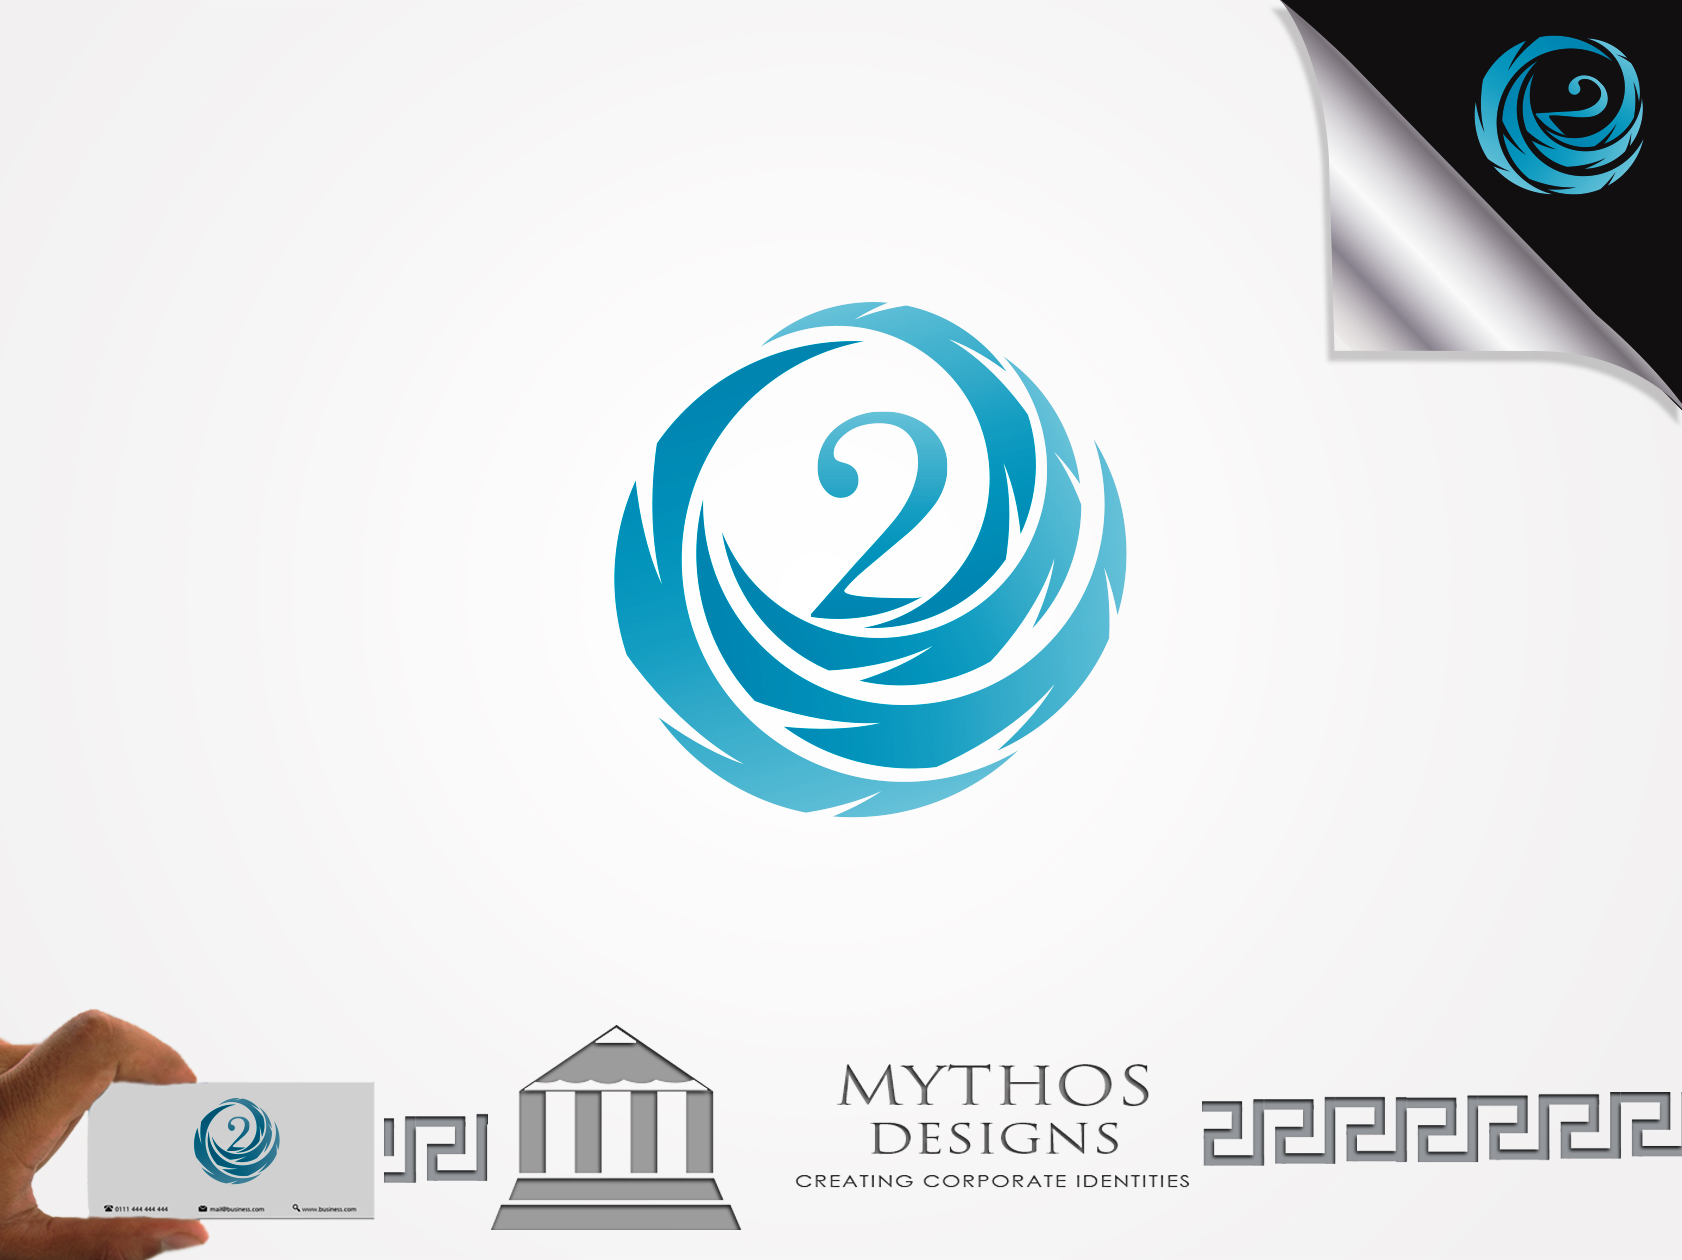 Logo Design by Mythos Designs - Entry No. 48 in the Logo Design Contest Artistic Logo Design for O2.